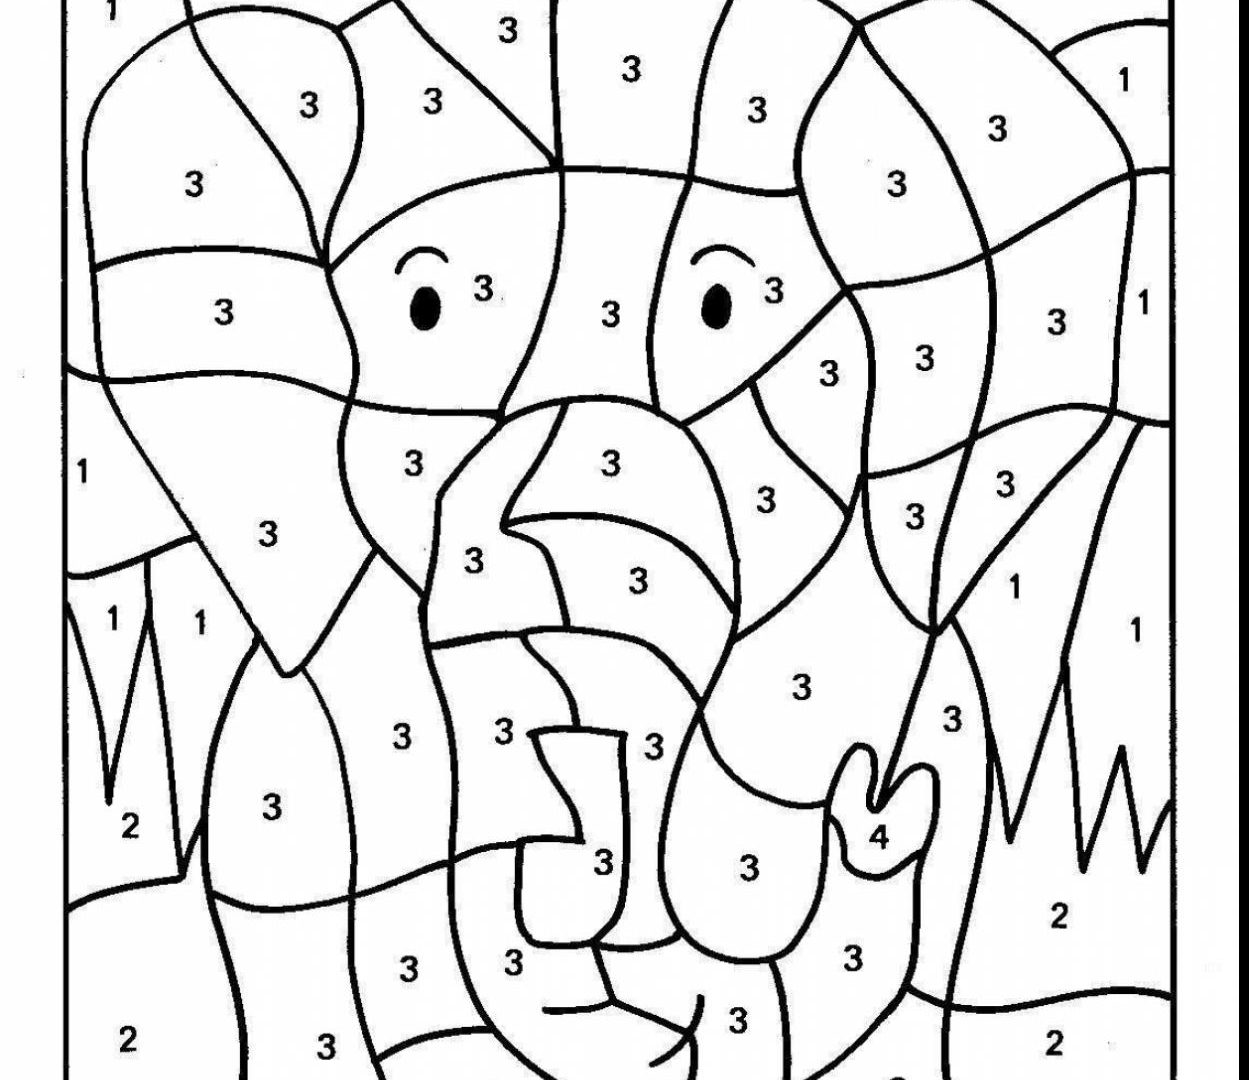 2nd grade math coloring sheets coloring pages math coloring un worksheets 2nd grade math sheets coloring 2nd grade